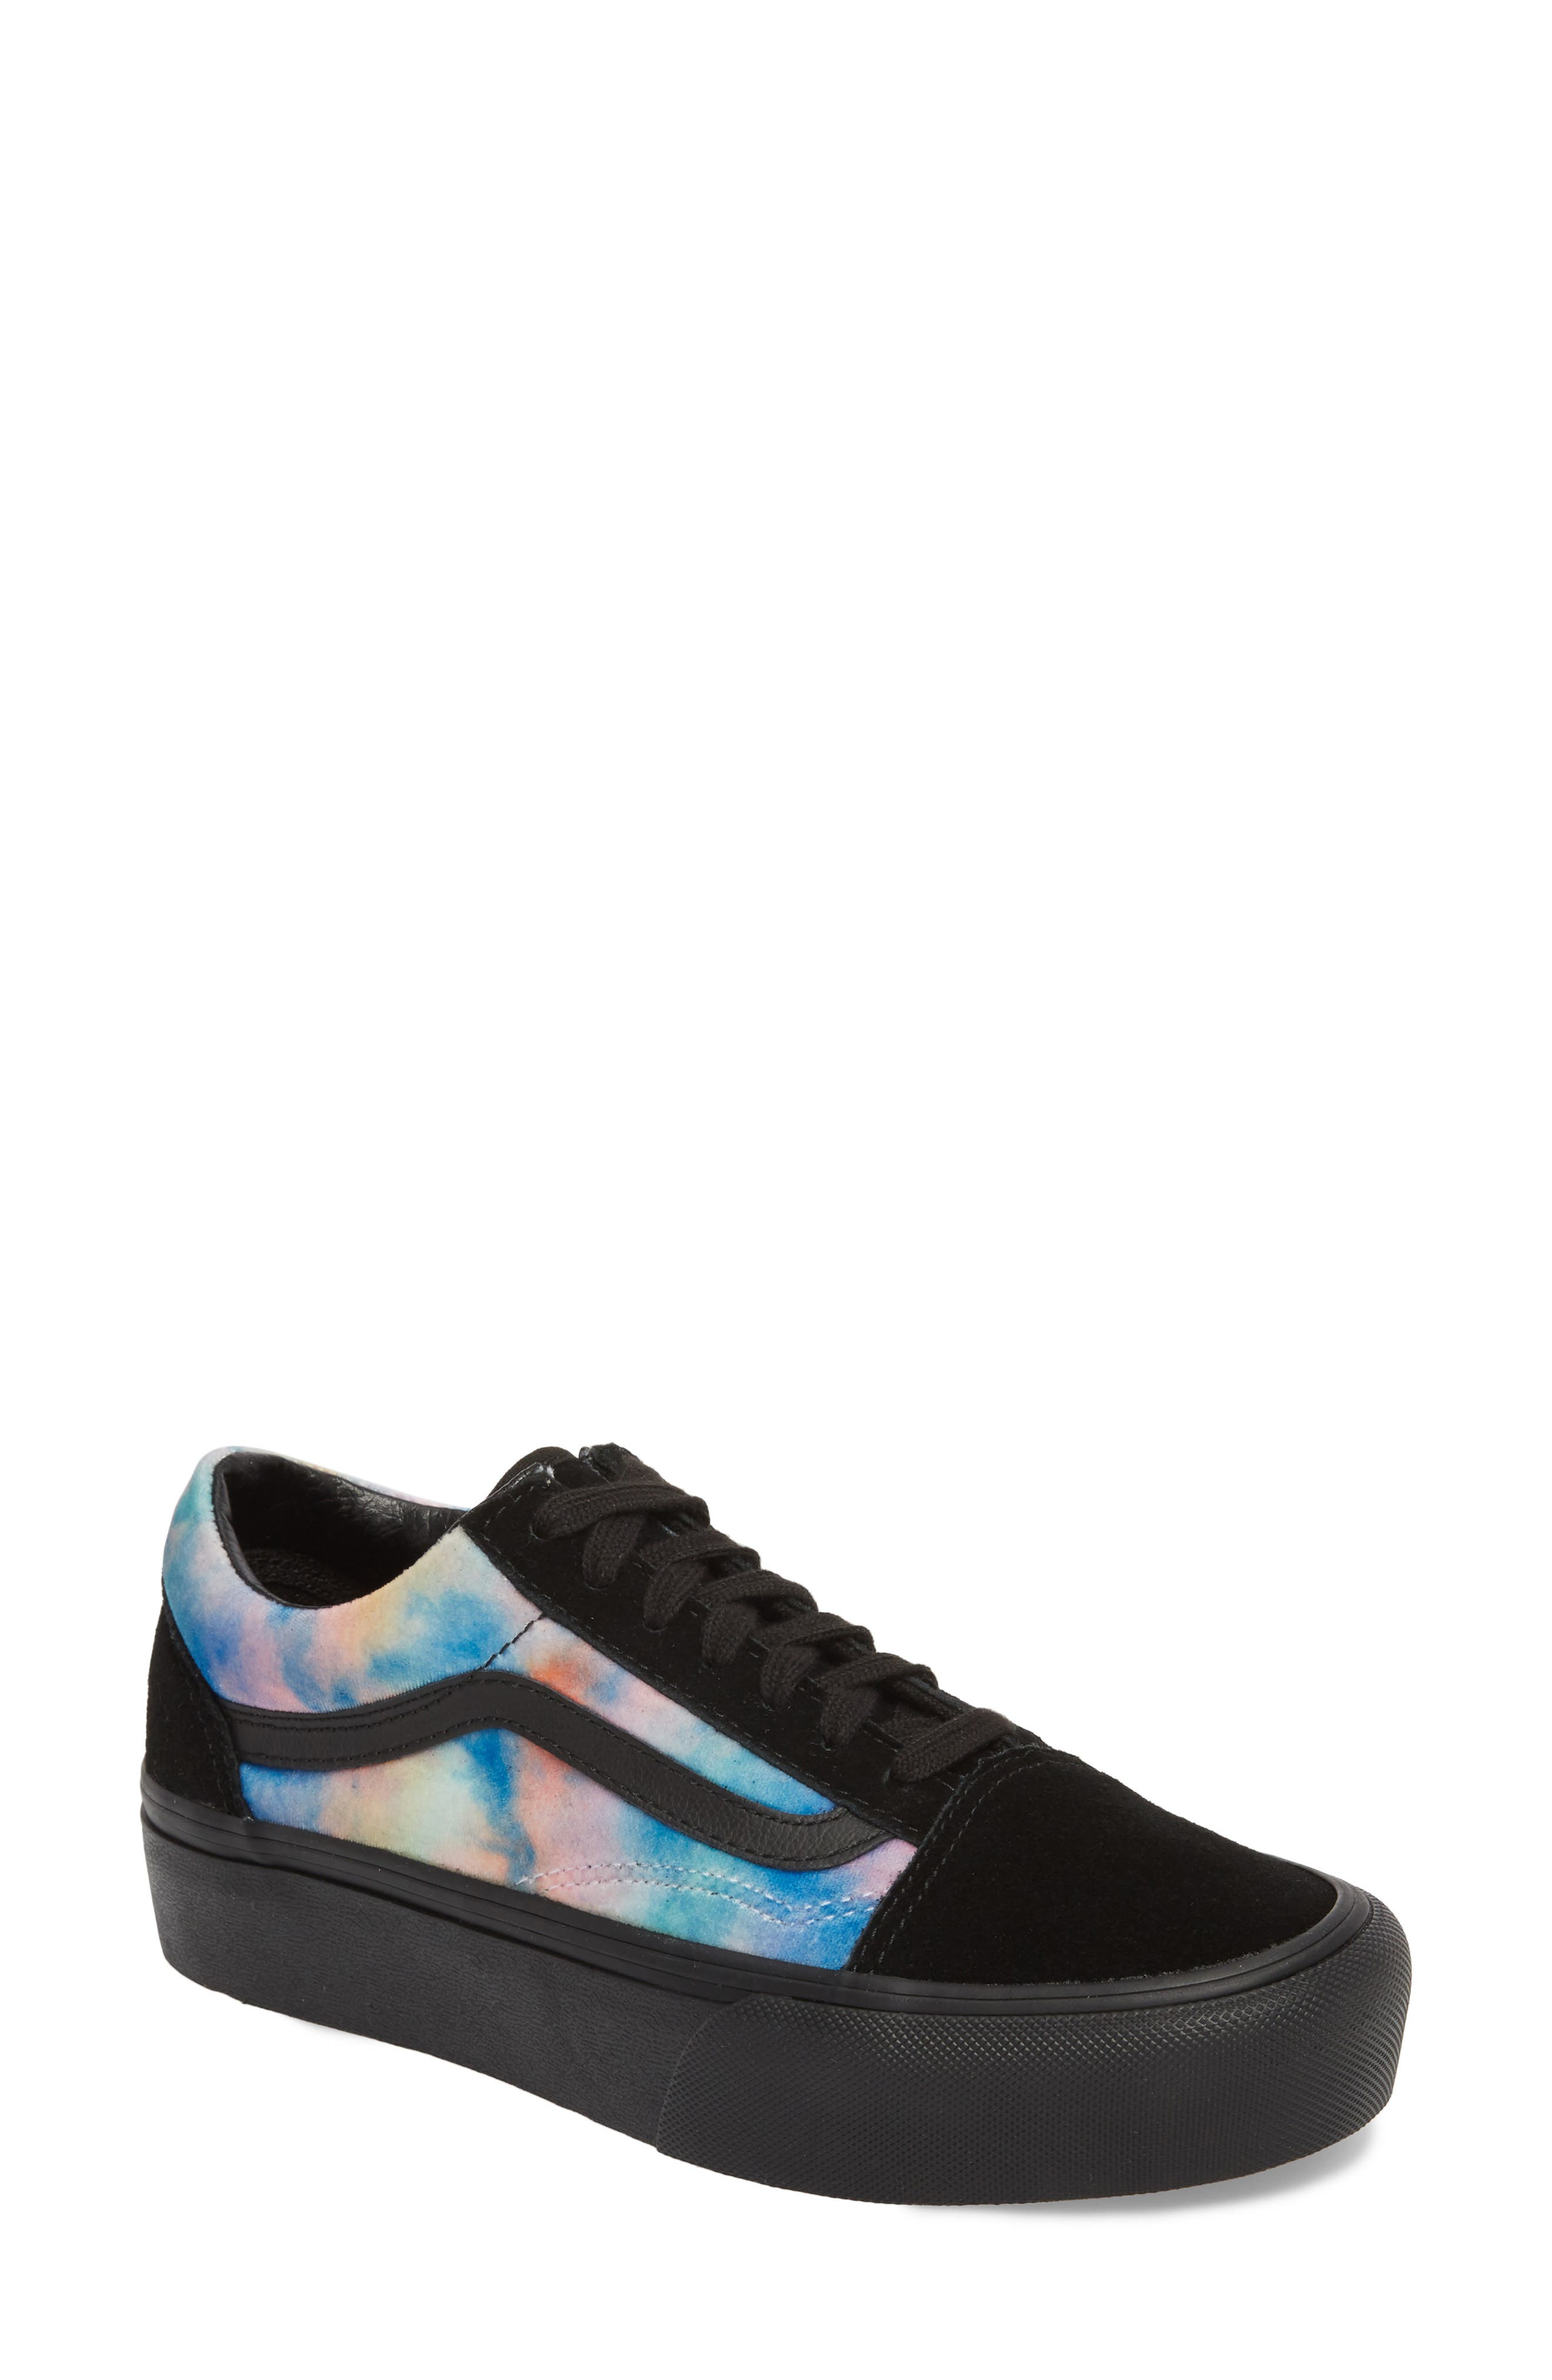 black slip on vans women